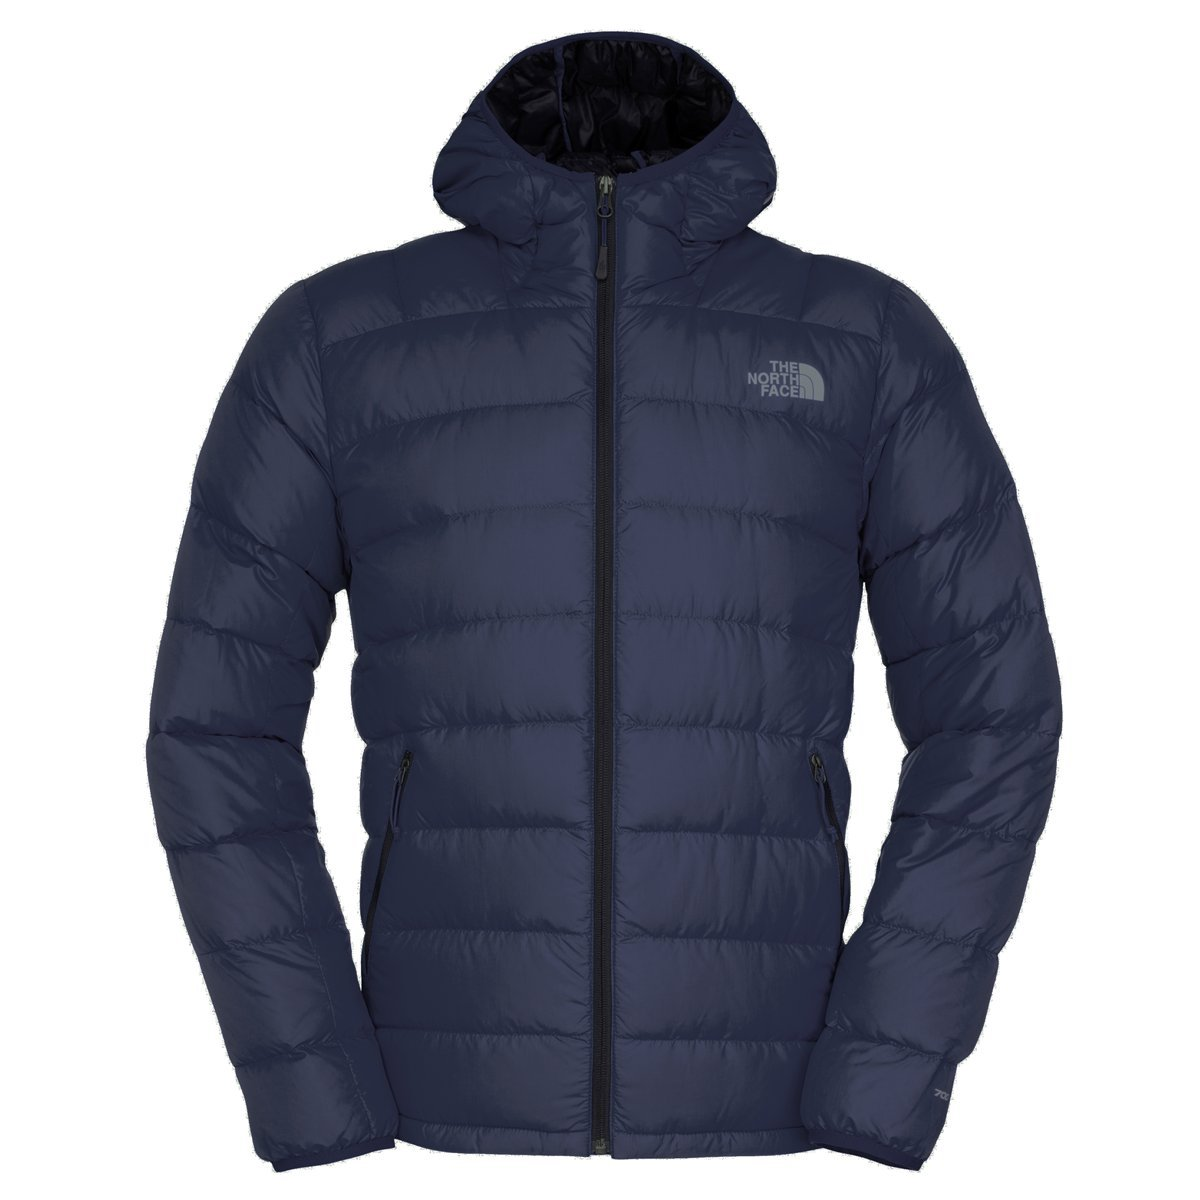 The North Face Herren Jacke La Paz bestellen